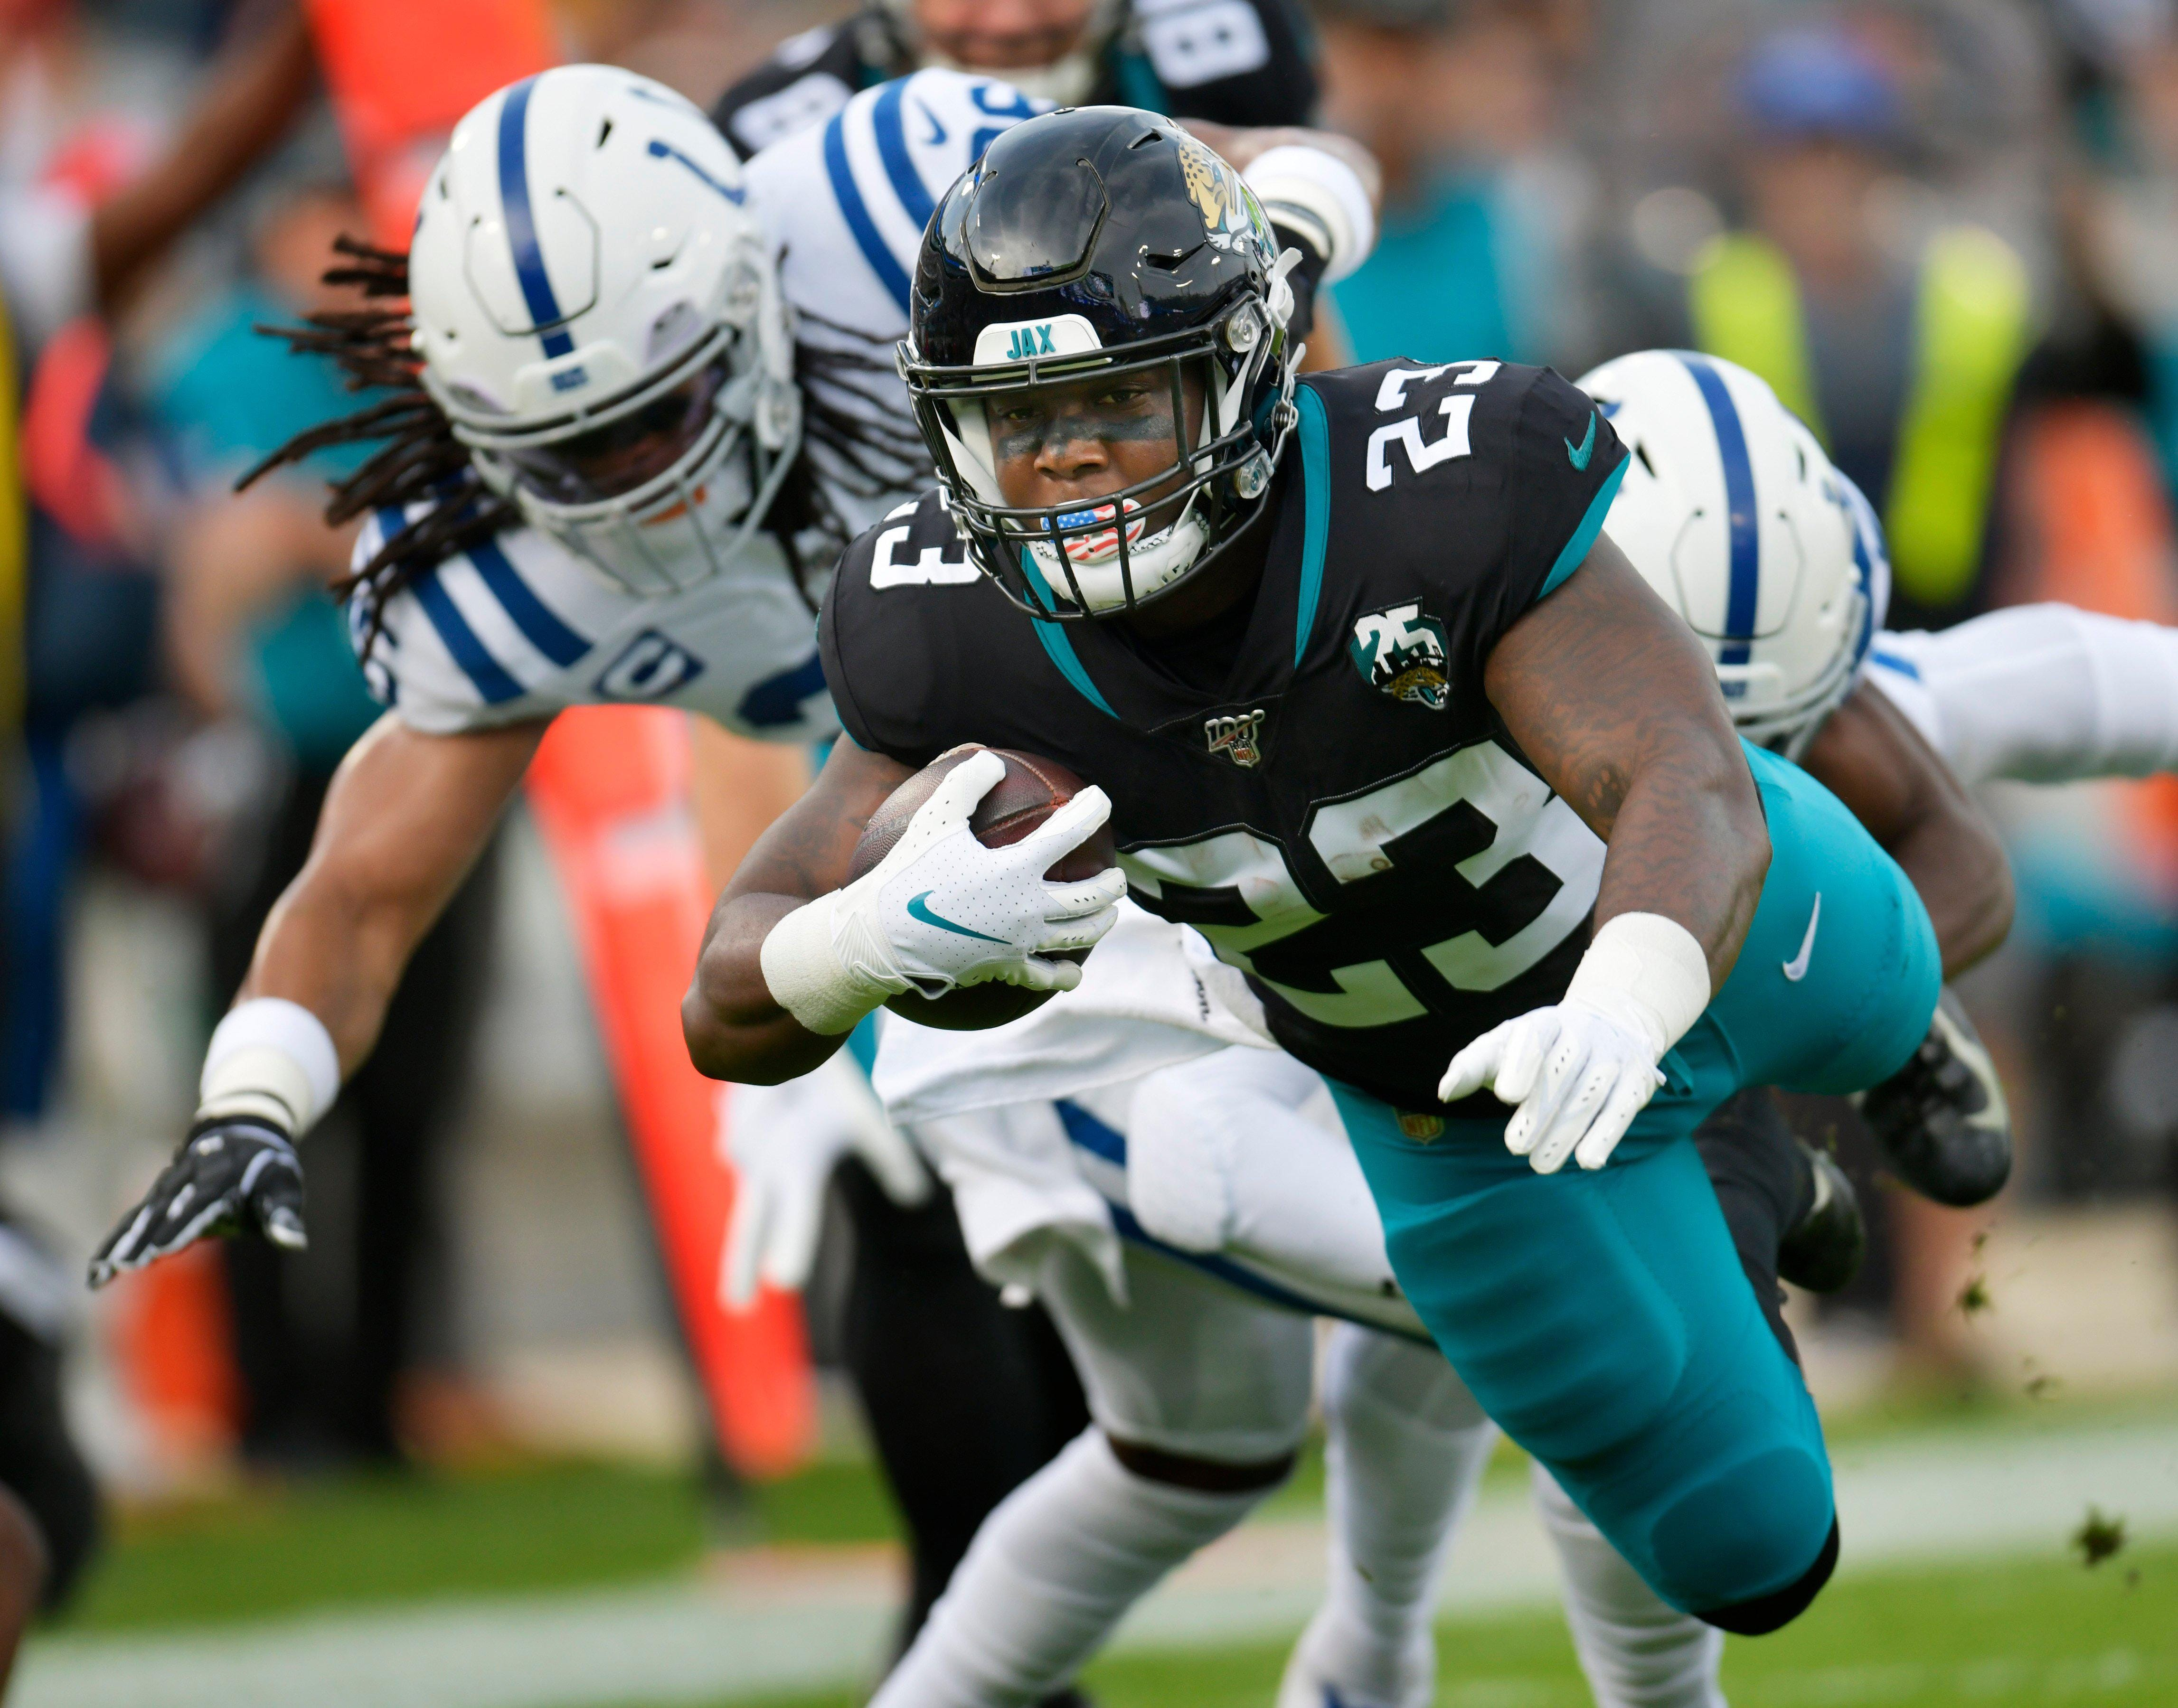 Report: NFL running back expected to miss entire season because of lingering COVID-19 issues